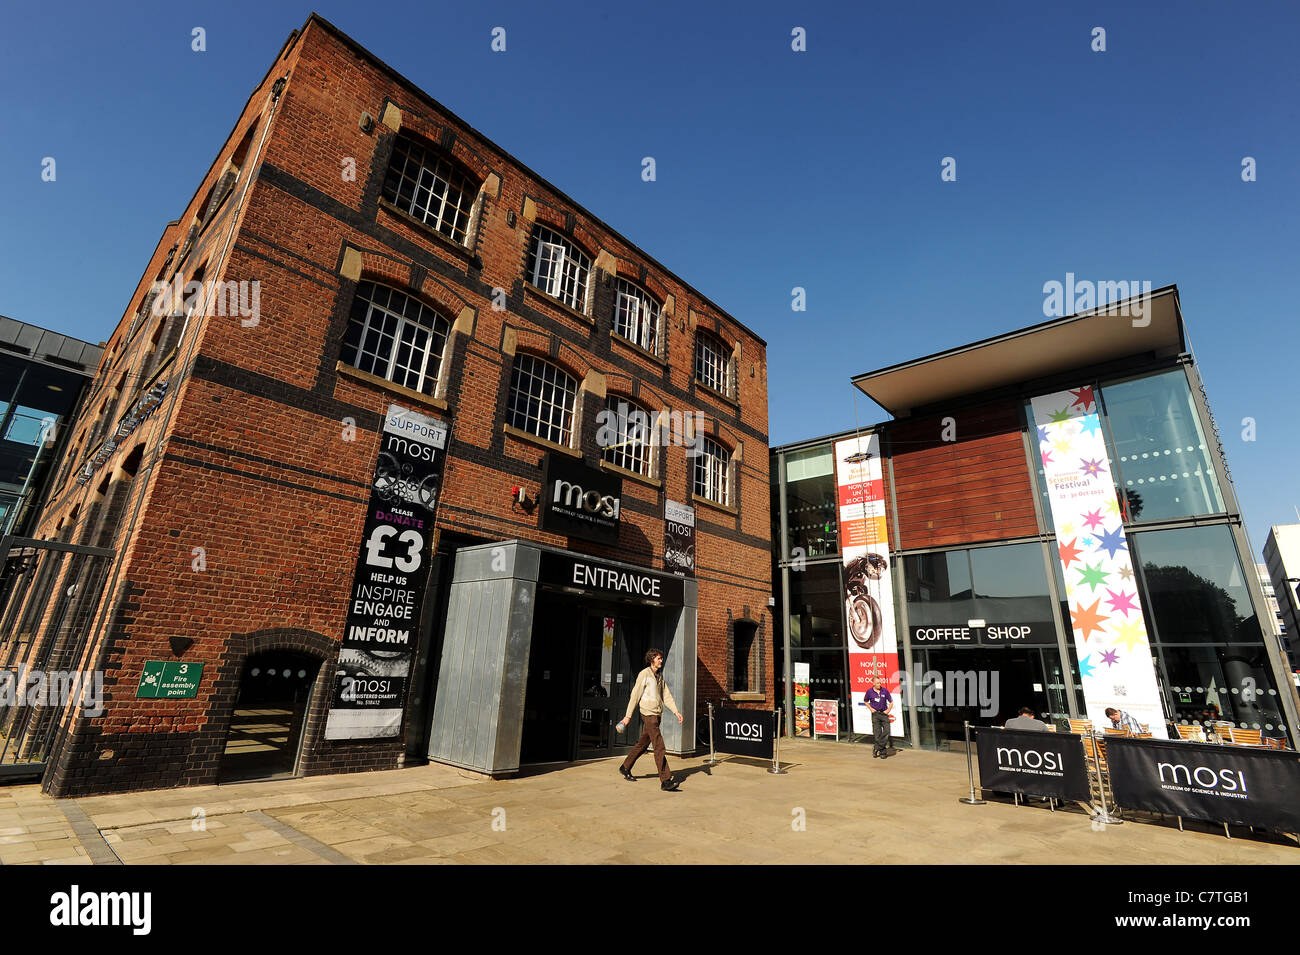 The entrance of the Museum of Science and Industry, Manchester, England. Picture by Paul Heyes, Wednesday September - Stock Image